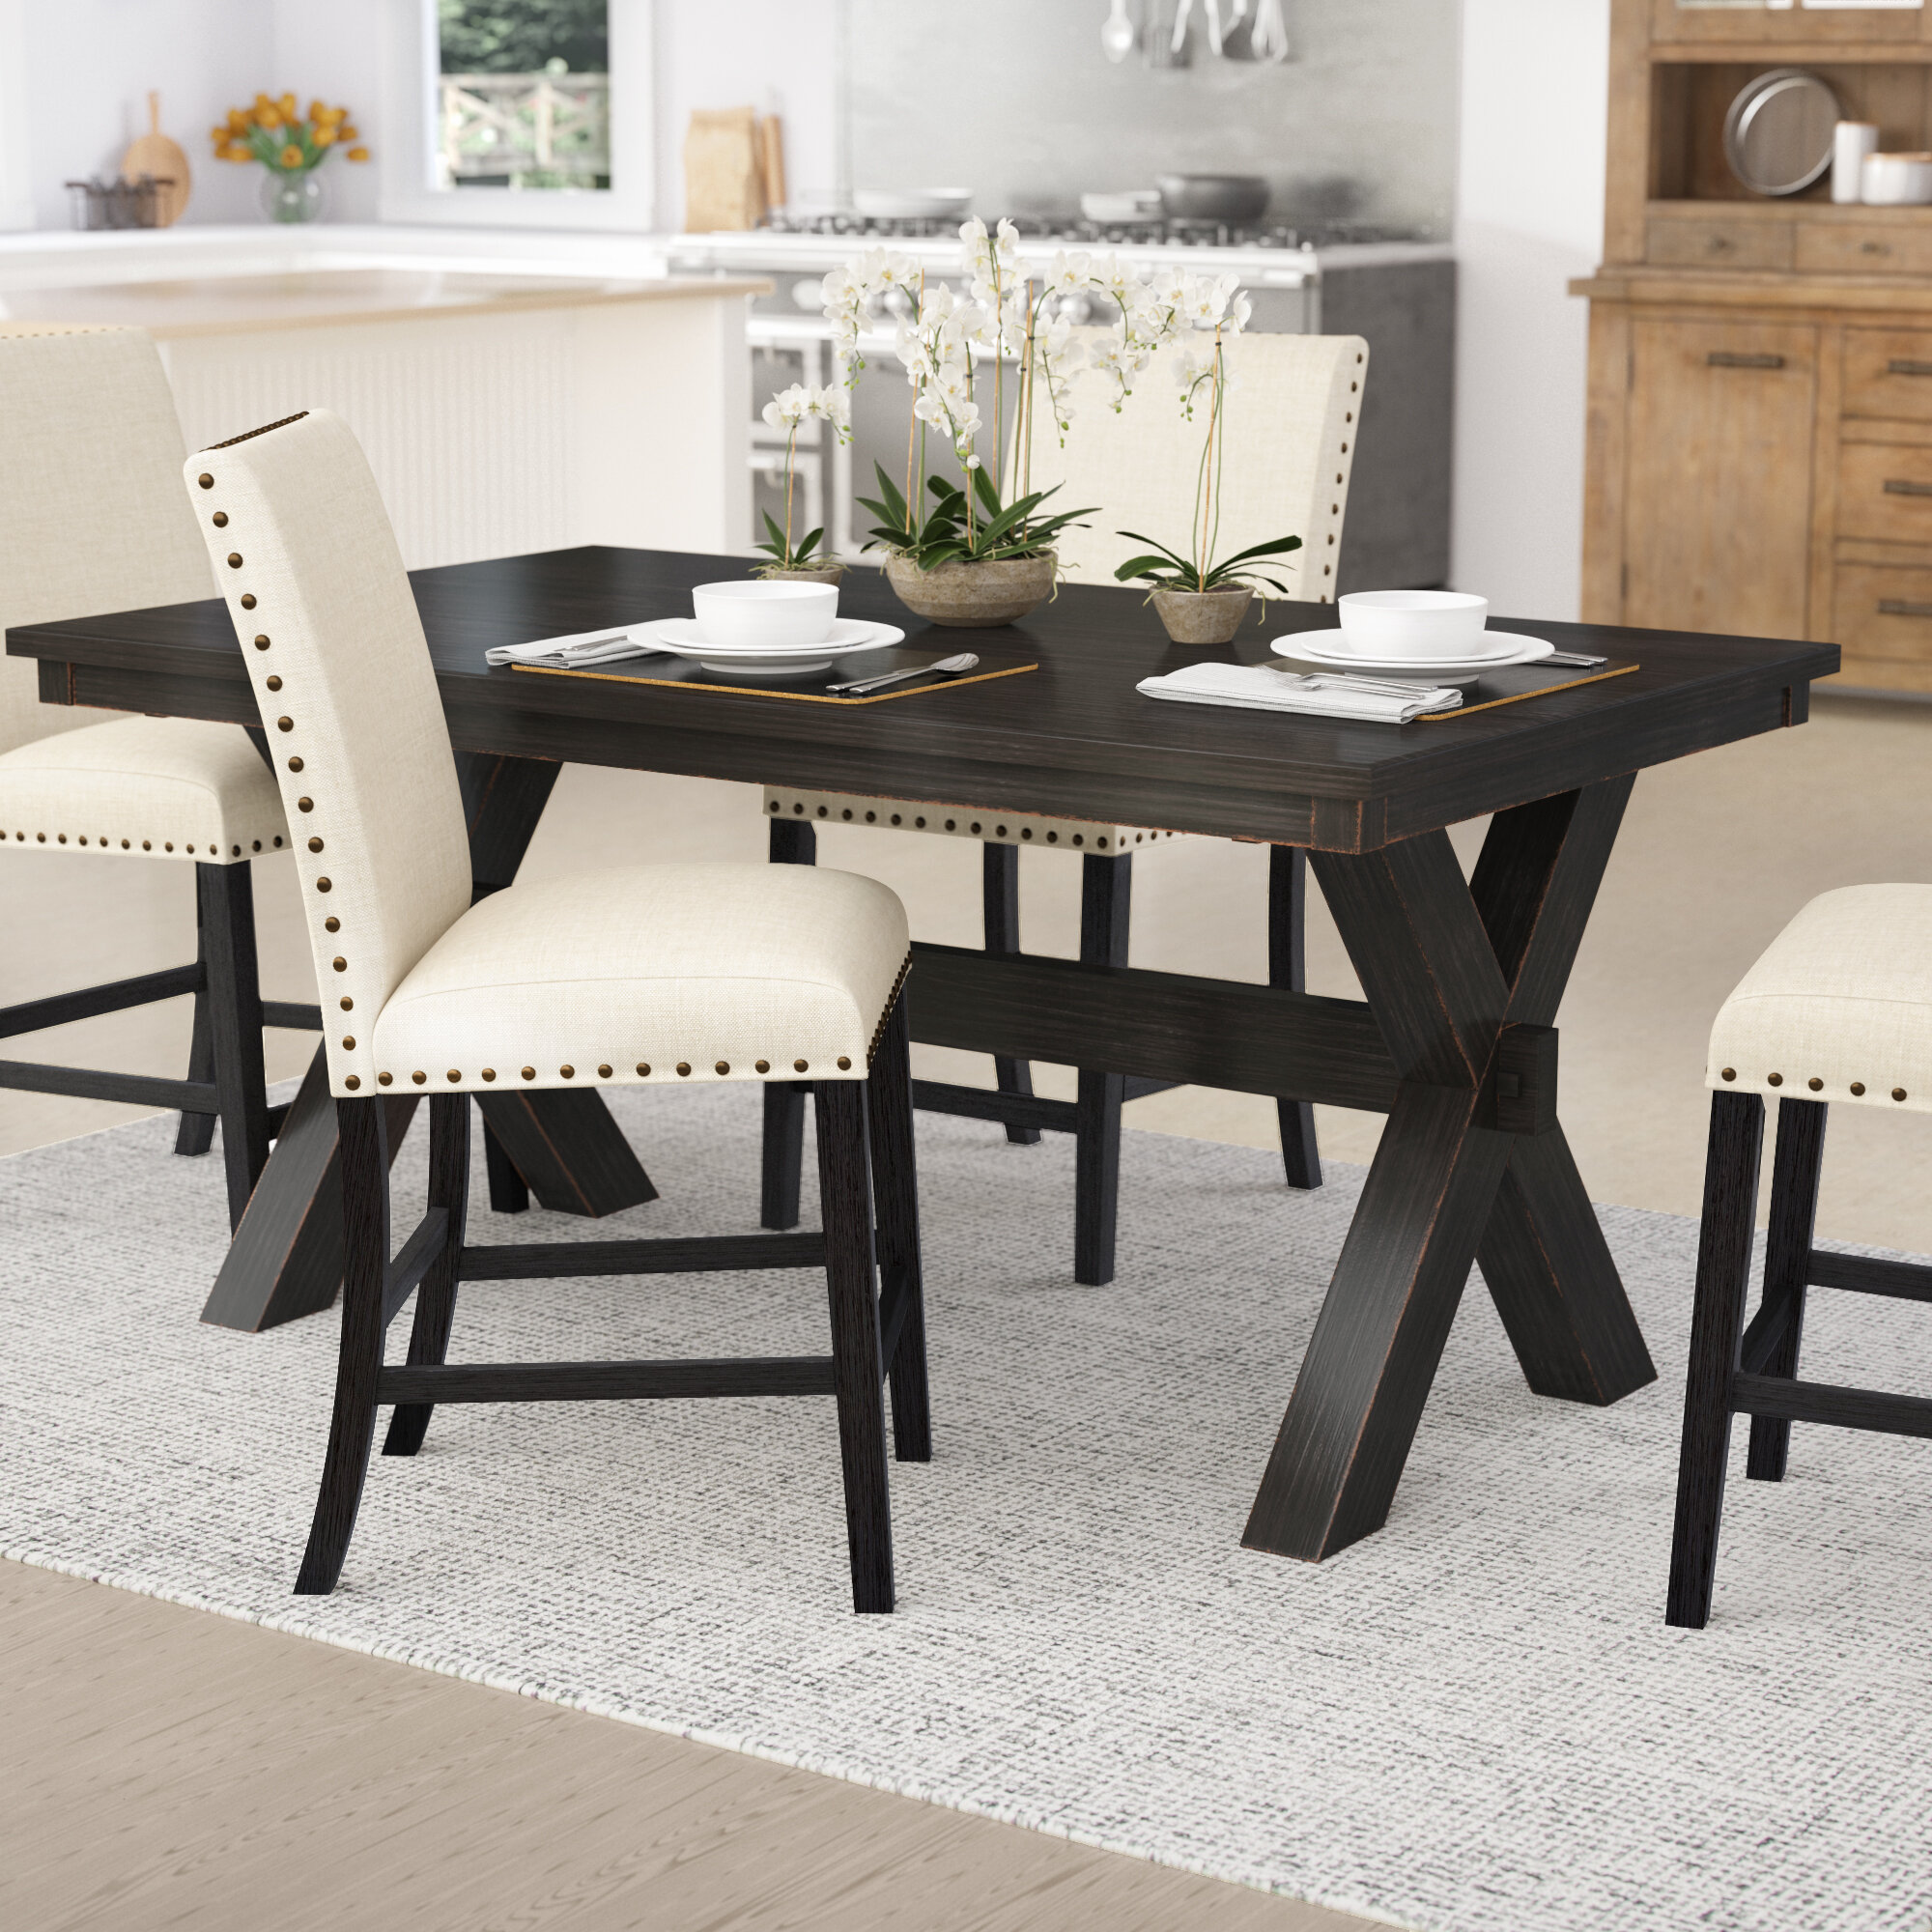 Laurel Foundry Modern Farmhouse Manitou Transitional Dining Table Reviews